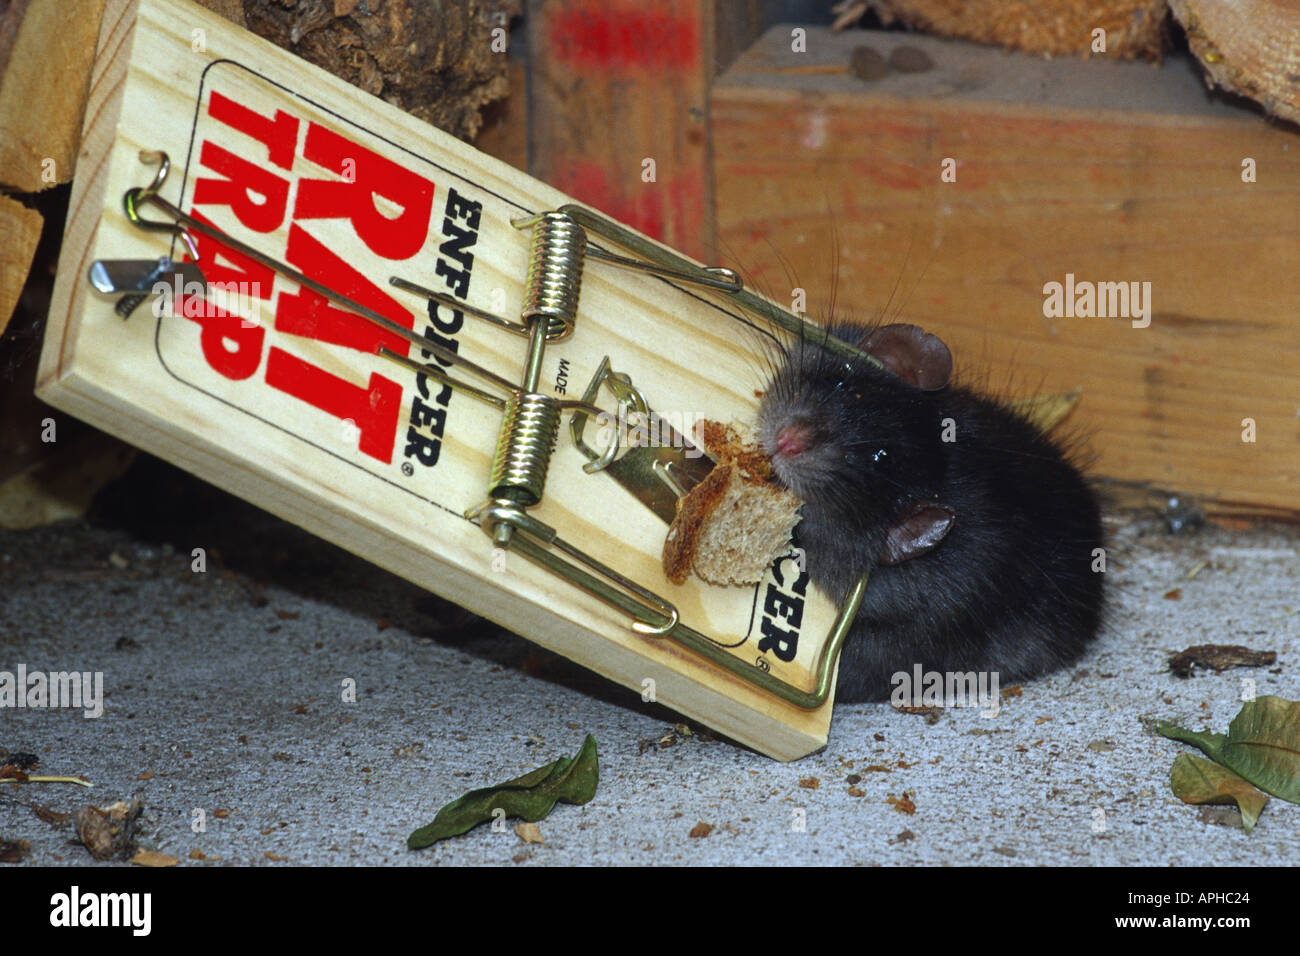 Rat with bait in mouth caught in trap place in woodshed - Stock Image